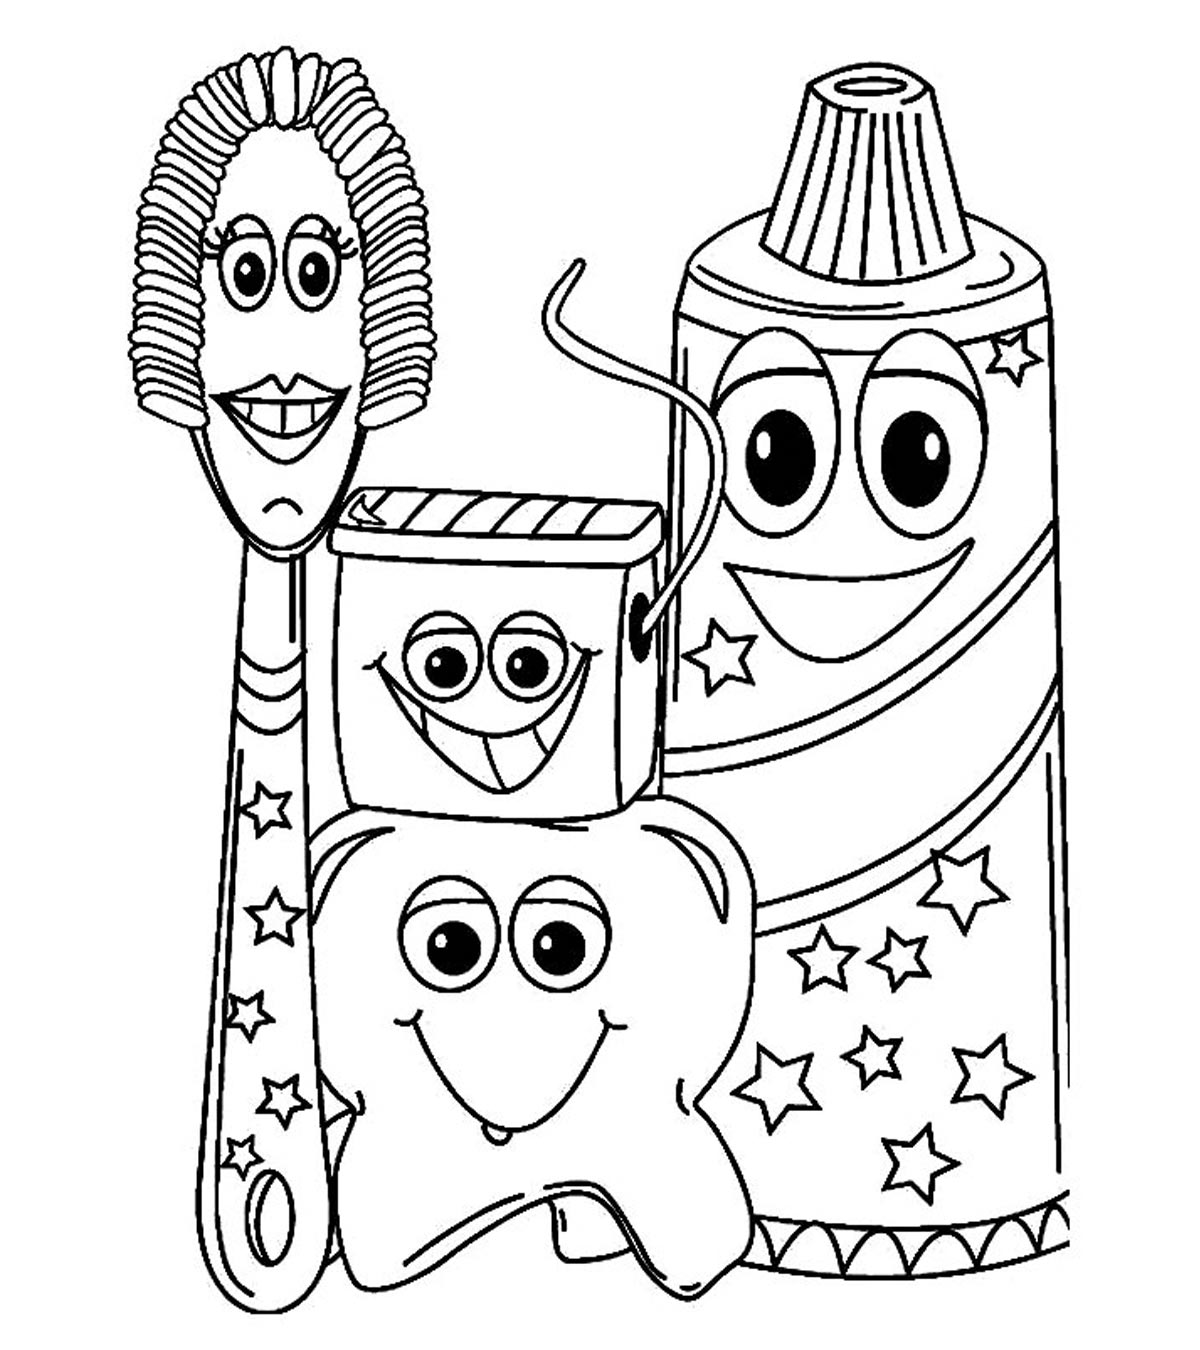 Dental Coloring Sheets Dental Coloring Page Free Dental ...